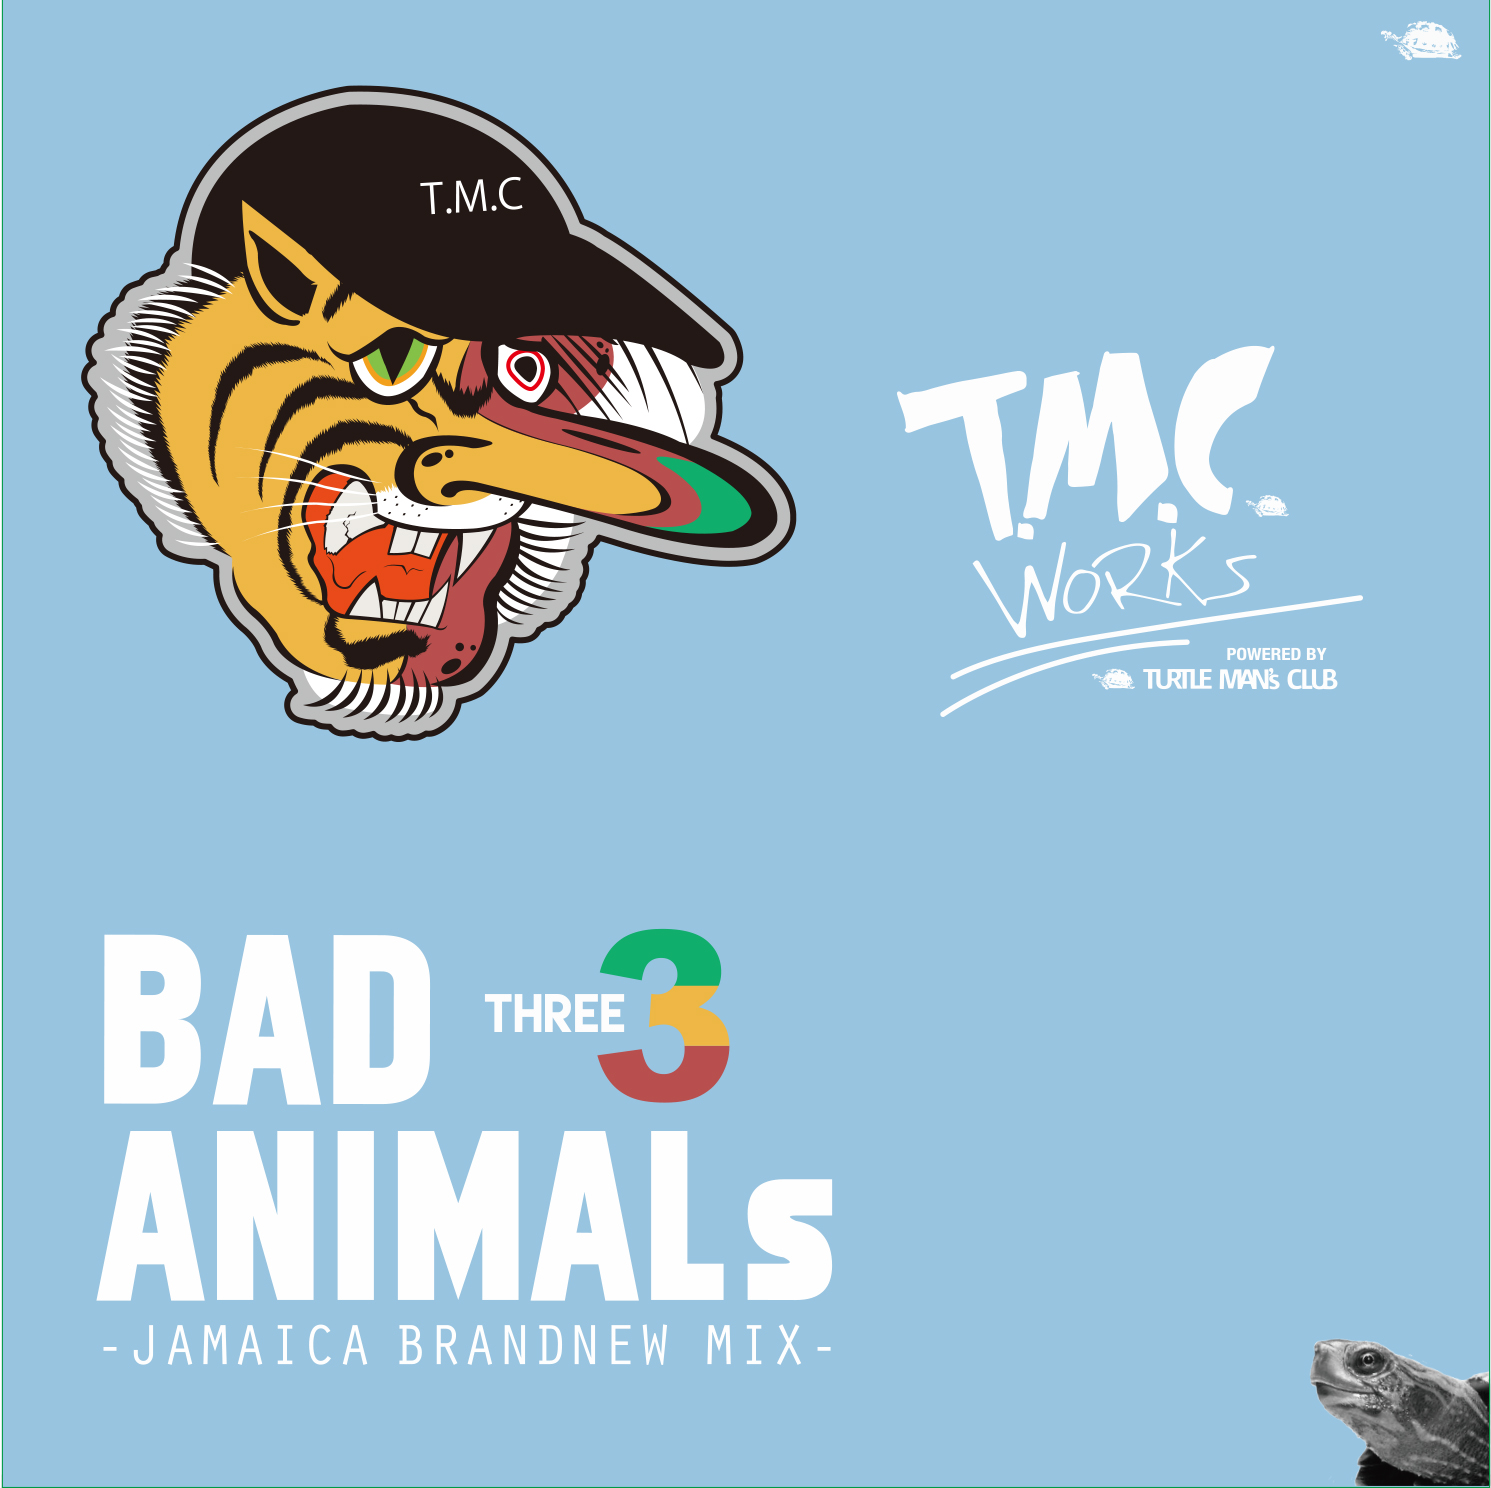 T.M.C WORKS(TURTLE MAN's CLUB) / BAD ANIMALS MIX VOL.3 -JAMAICA BRAND NEW MIX-